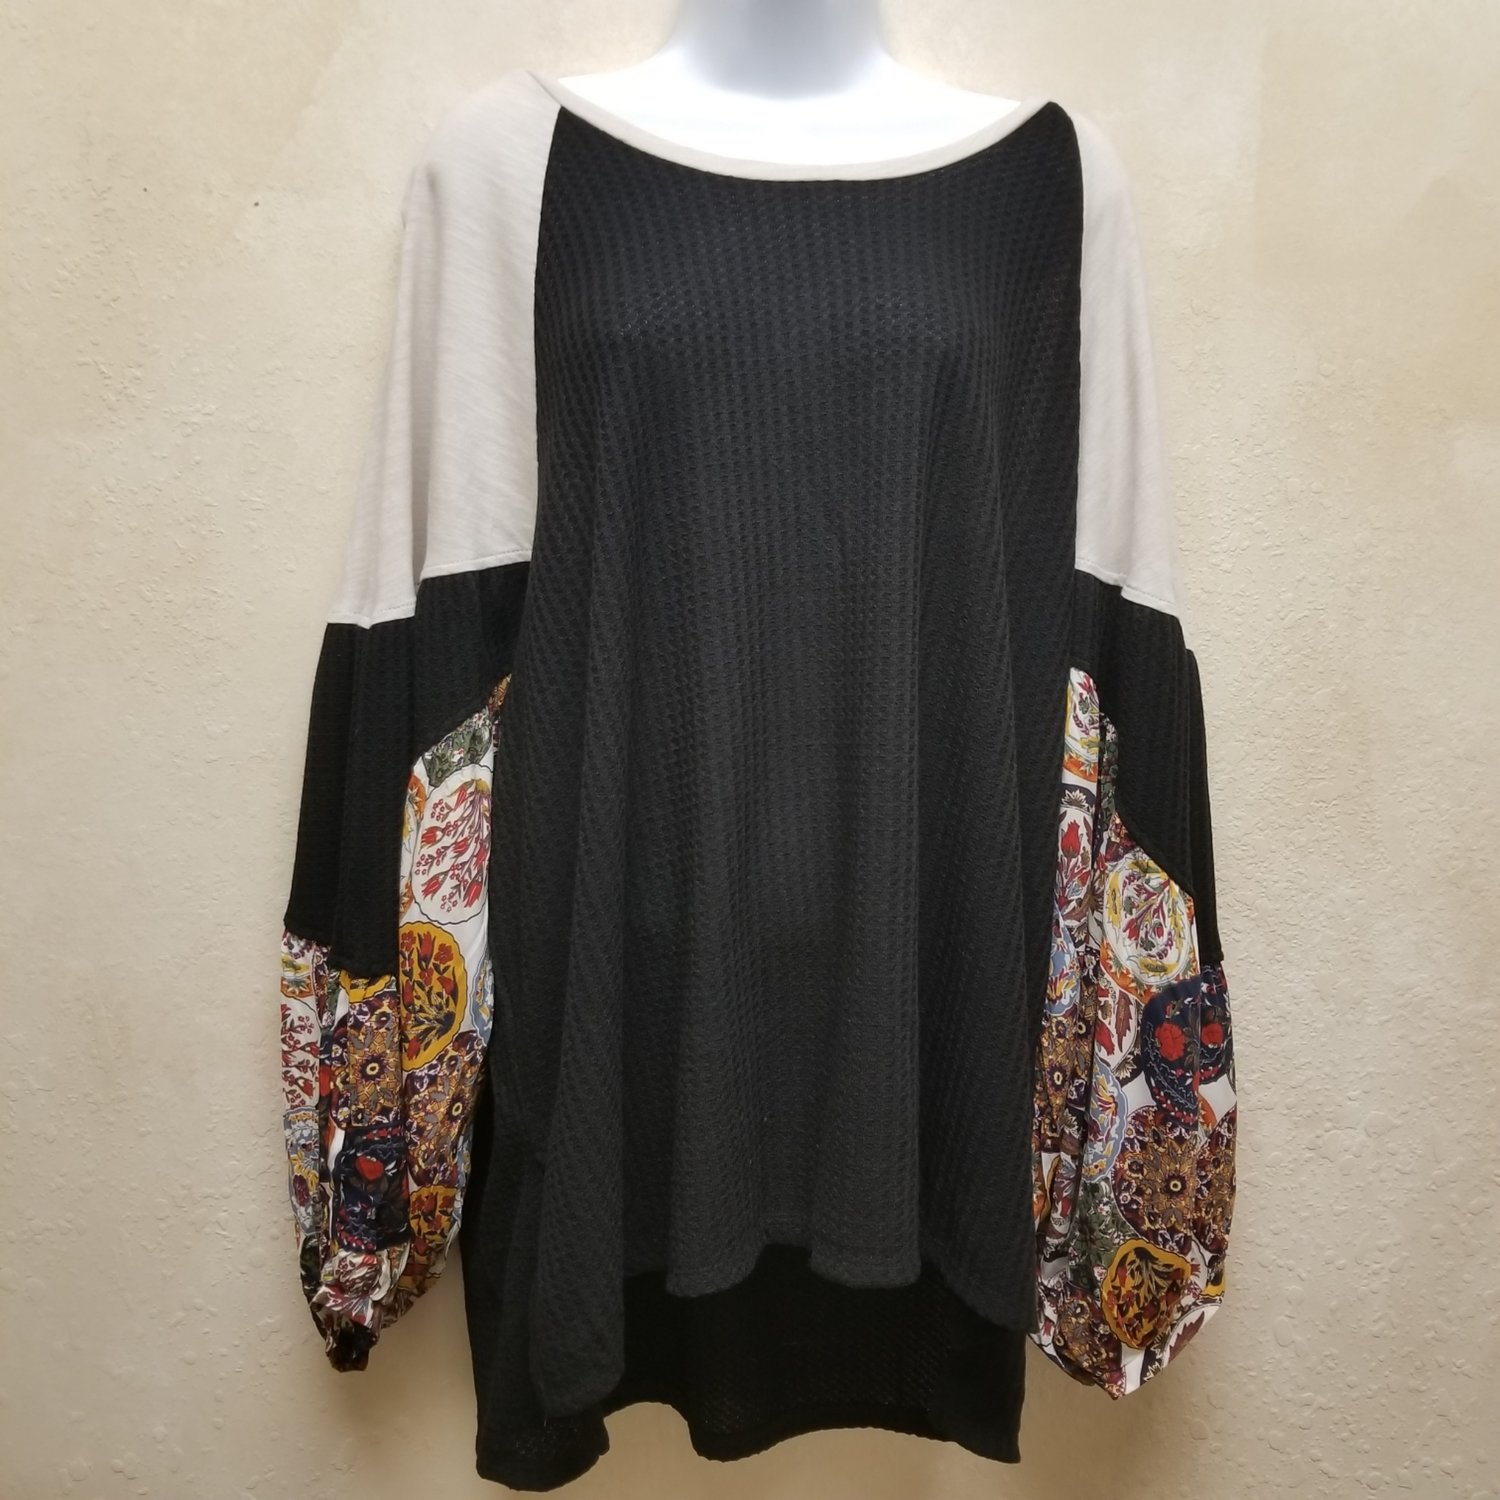 Waffle Knit Top With Floral Print Puff Sleeves